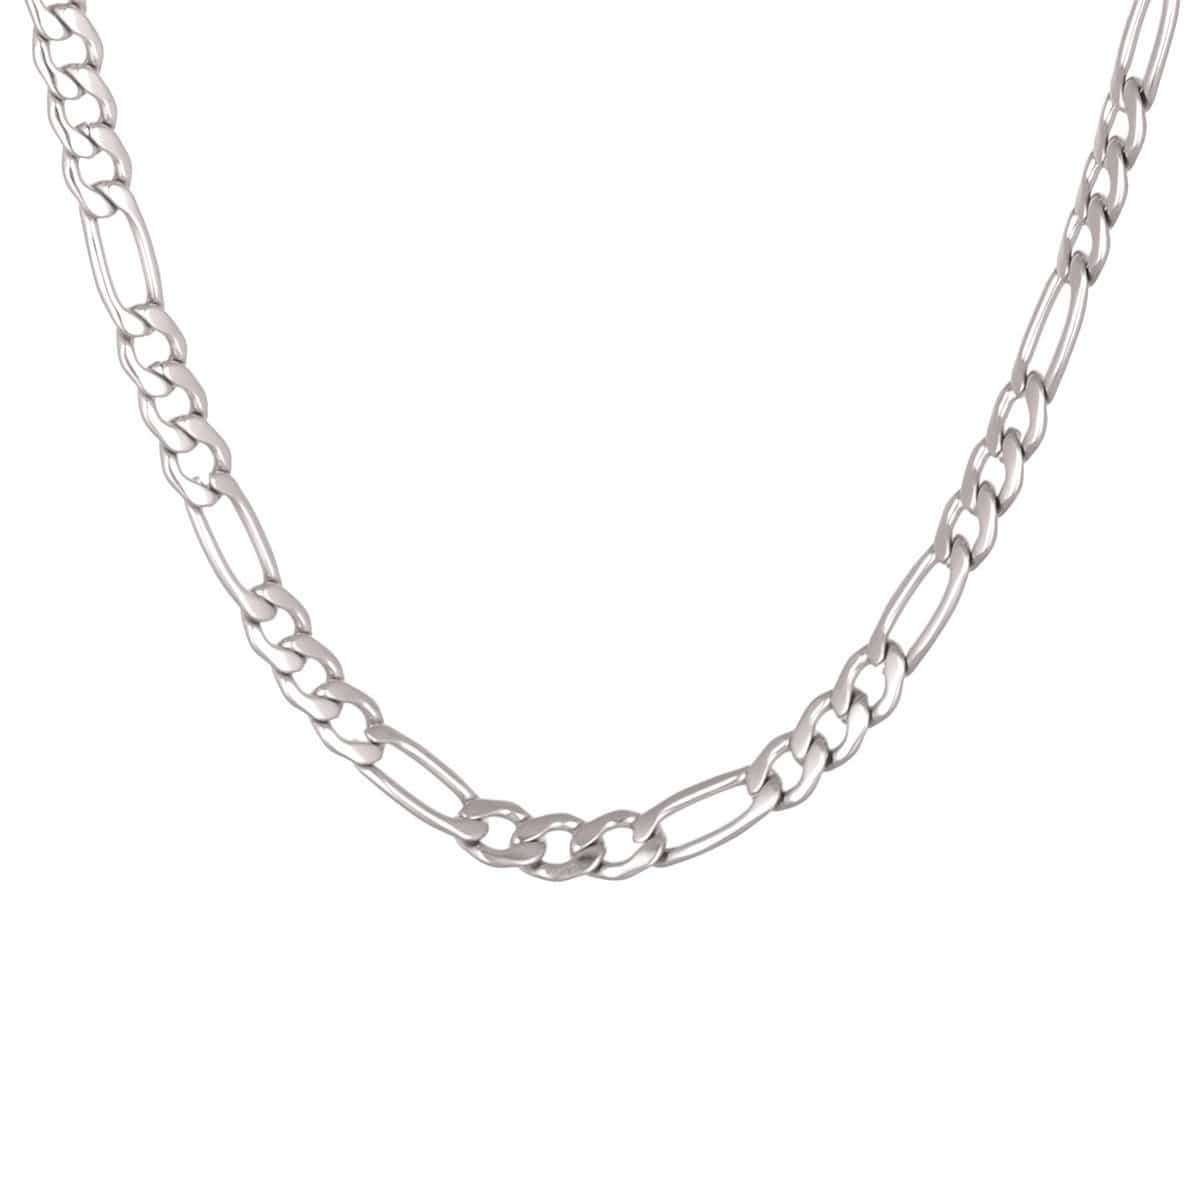 Silver Stainless Steel 6mm Figaro Polished Chain Chains